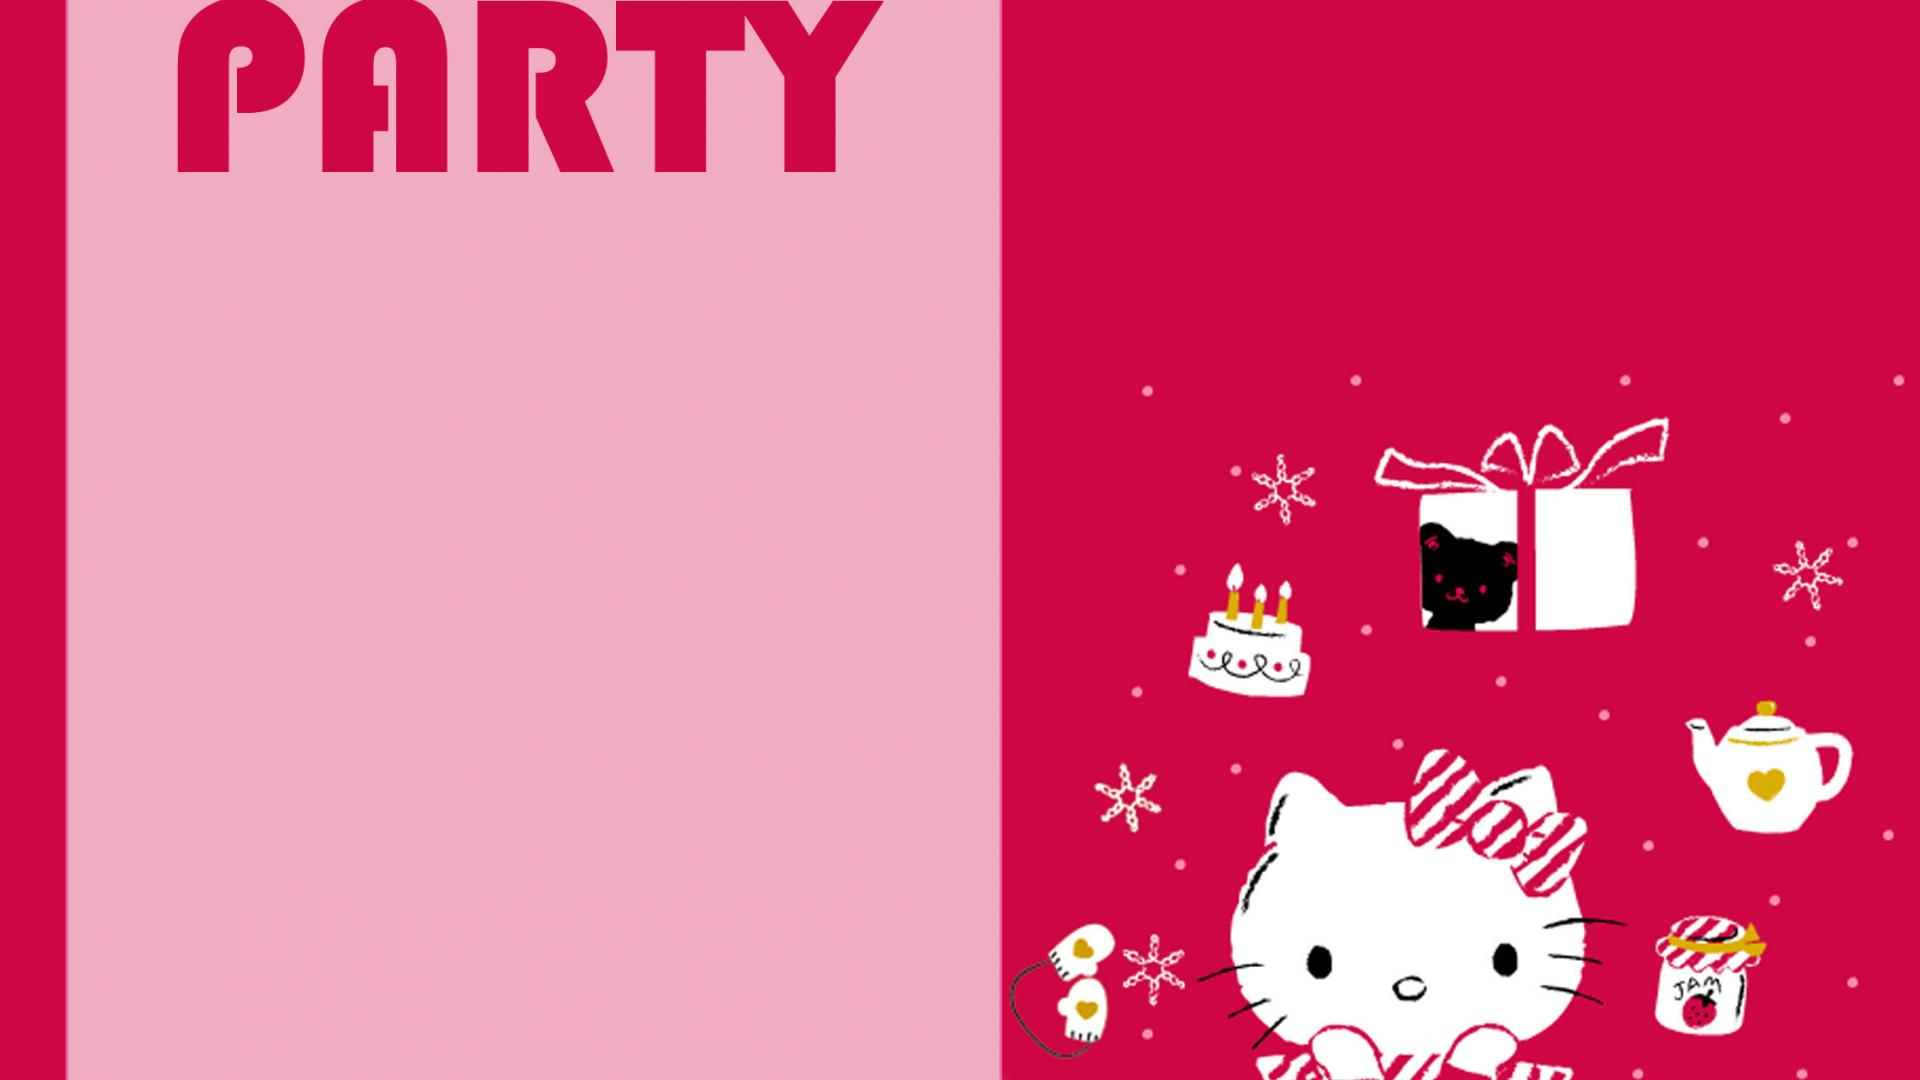 Free Hello Kitty Wallpaper for Party Invitation Card Design - HD ...